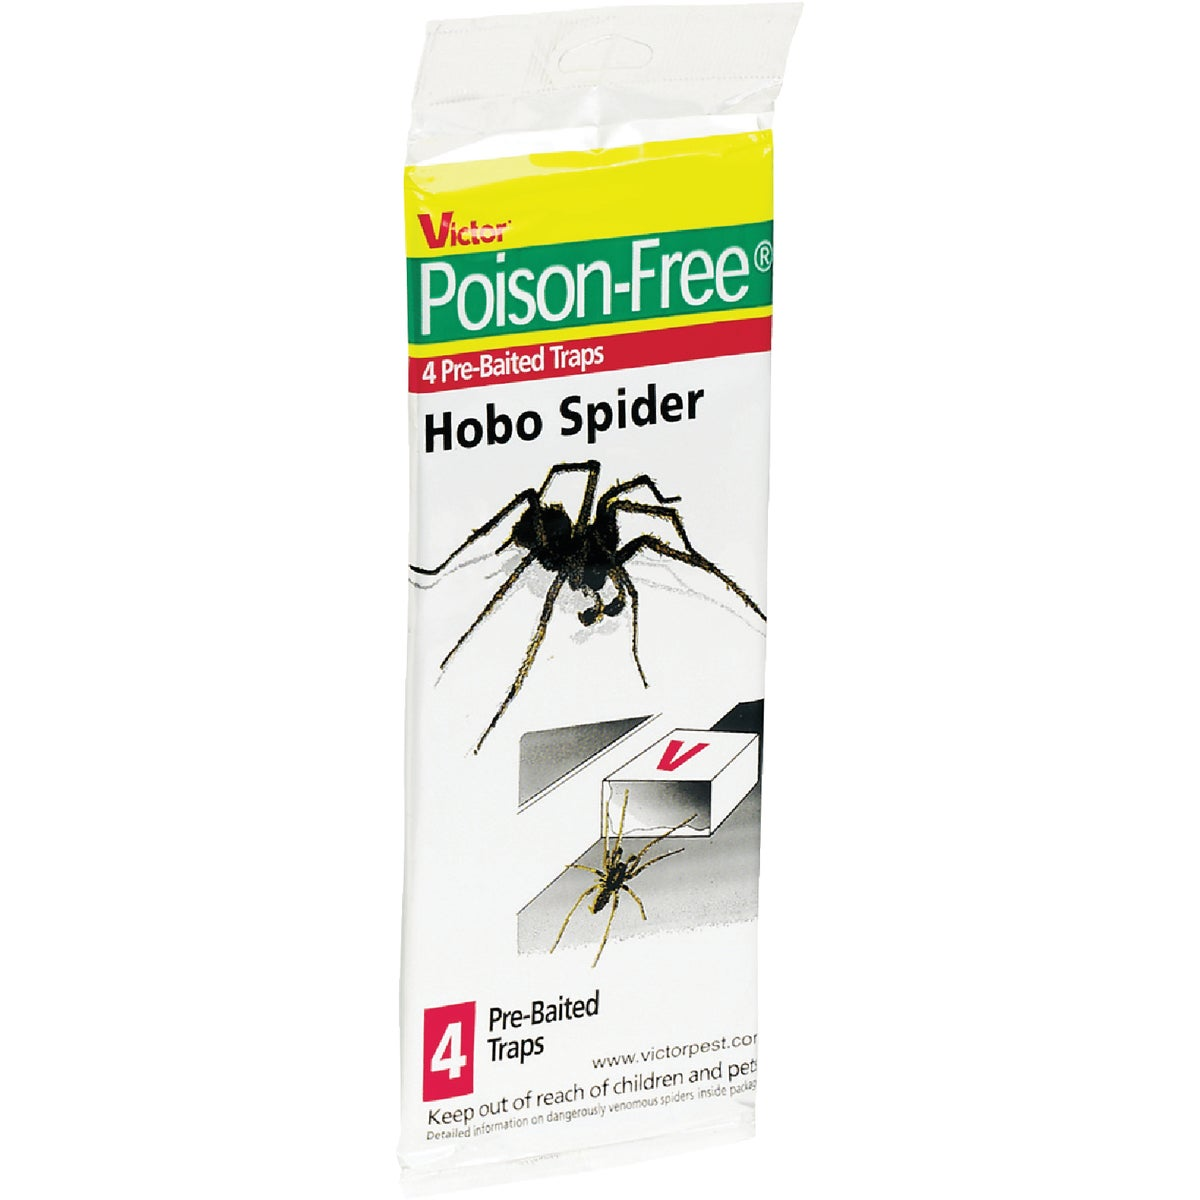 HOBO SPIDER TRAP - M293 by Woodstream Corp